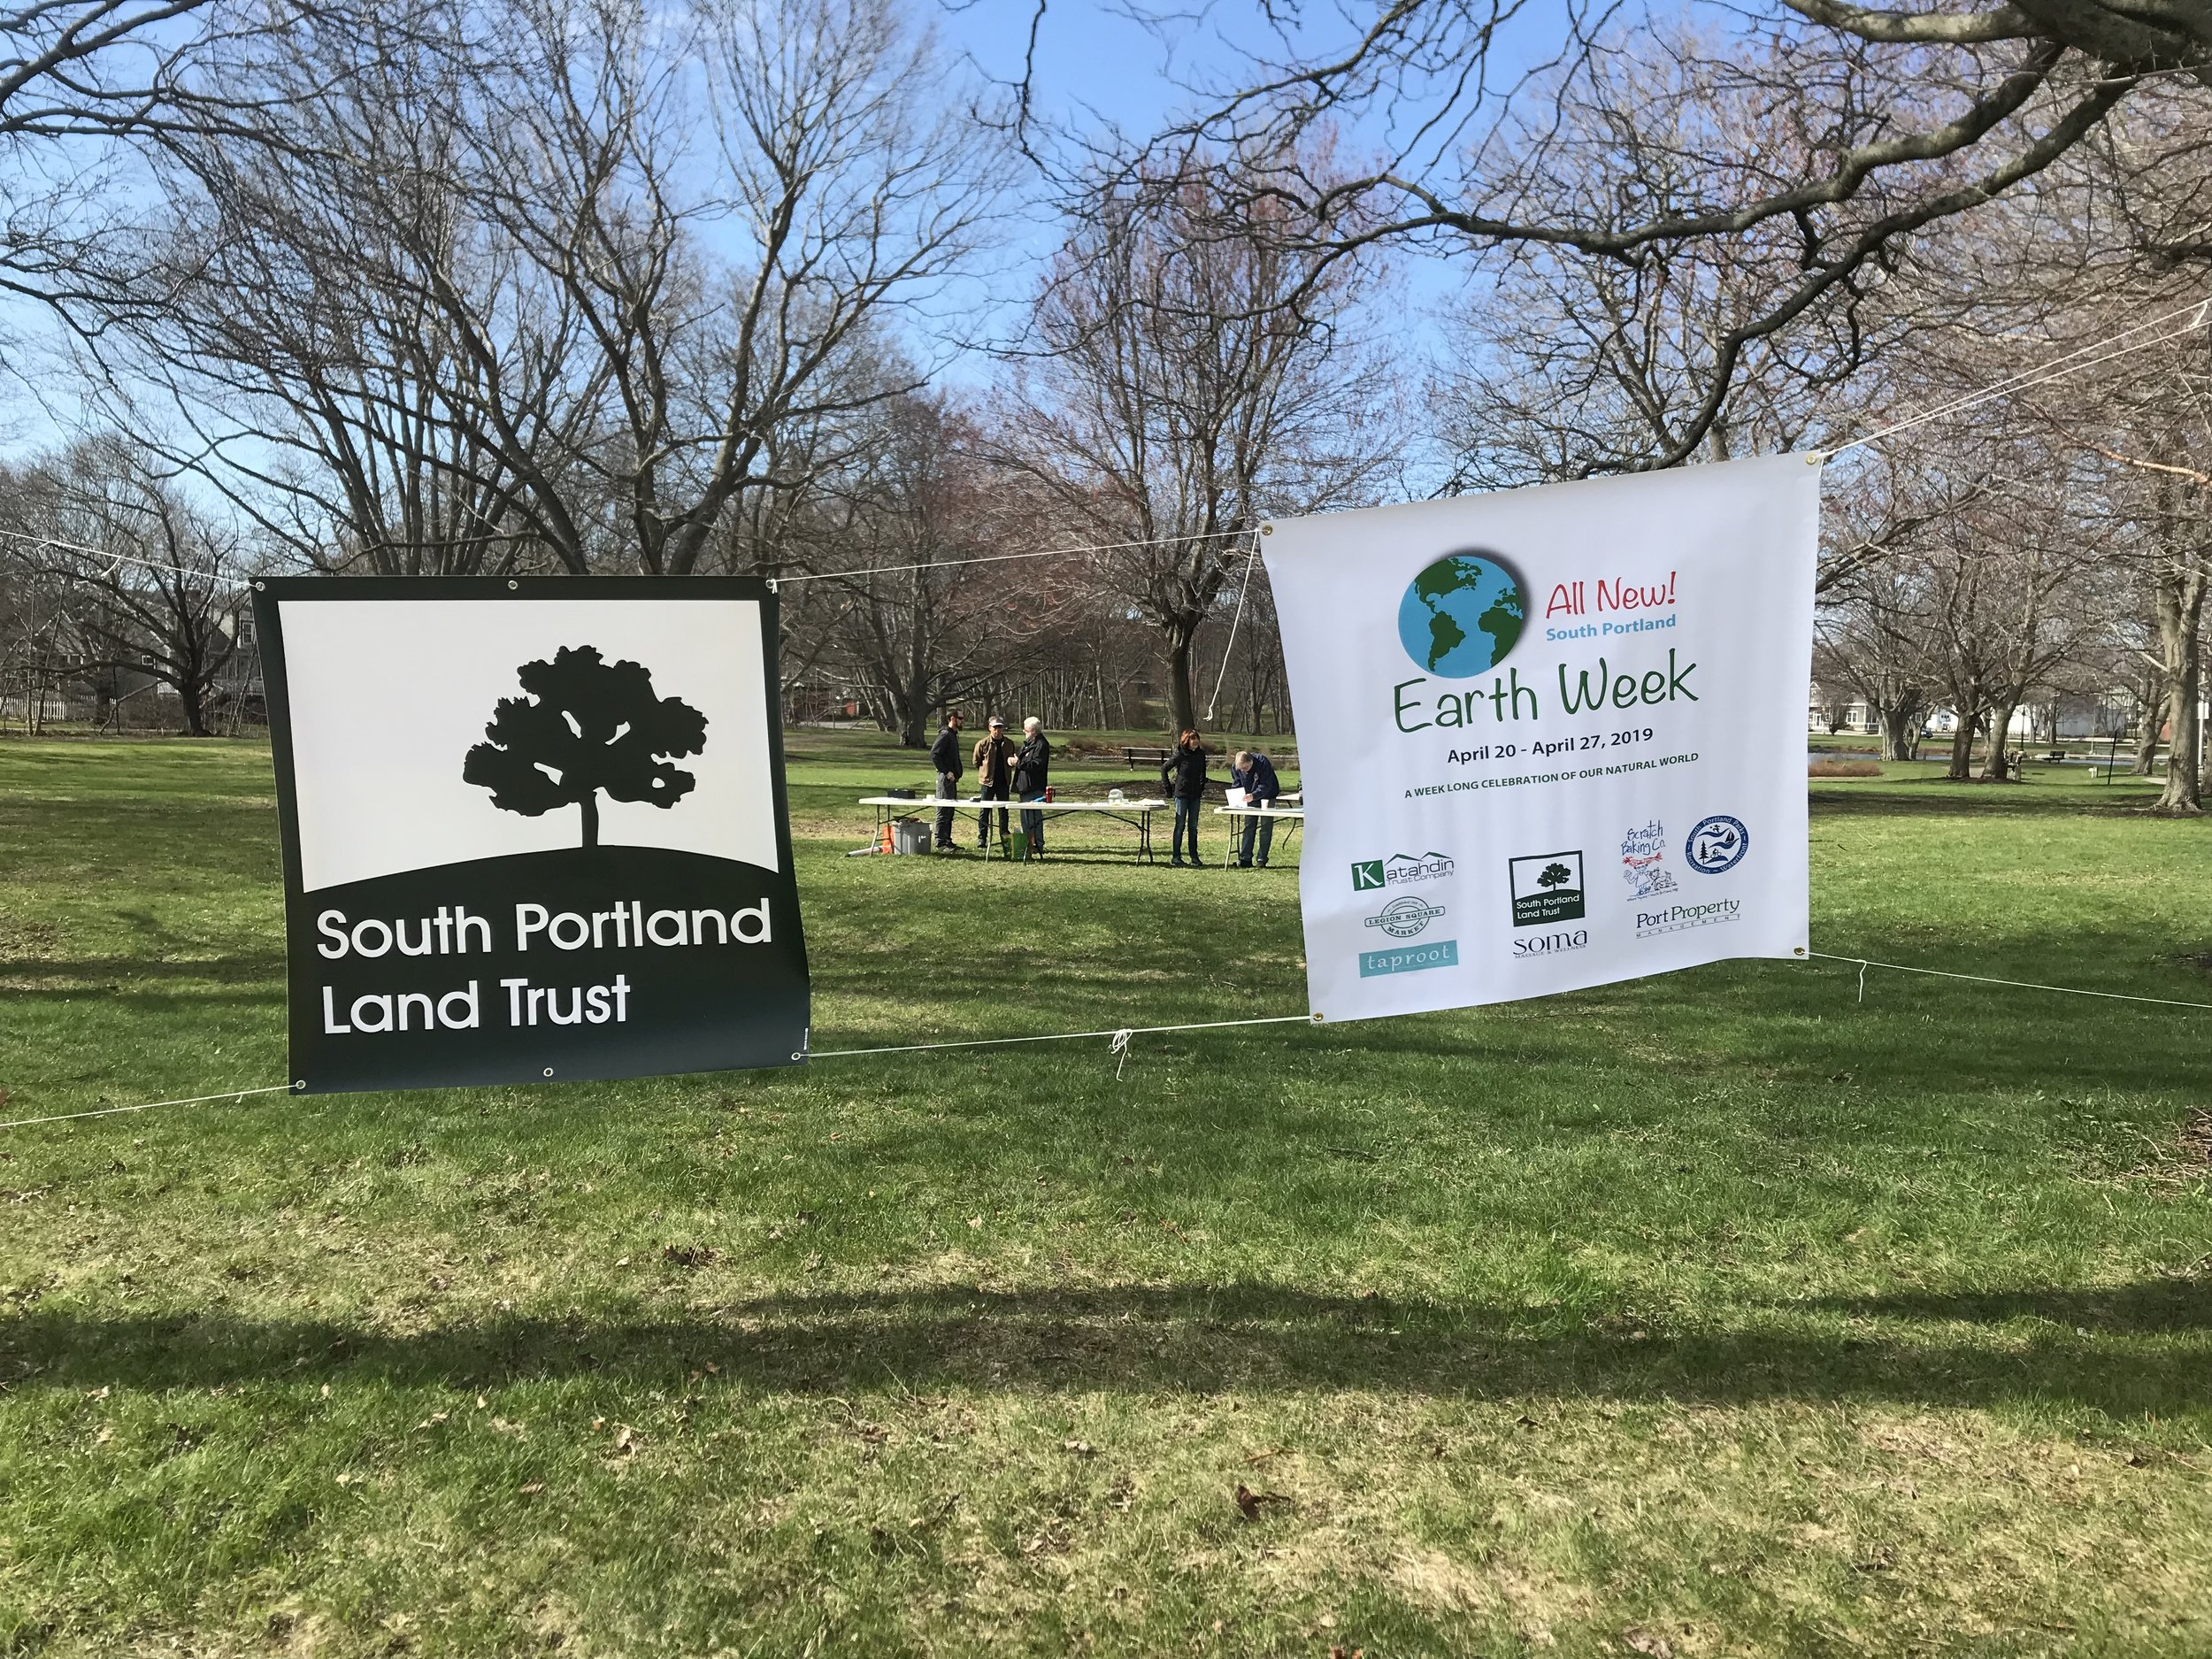 Read about Earth Week 2019 and much more in the SPLT spring newsletter